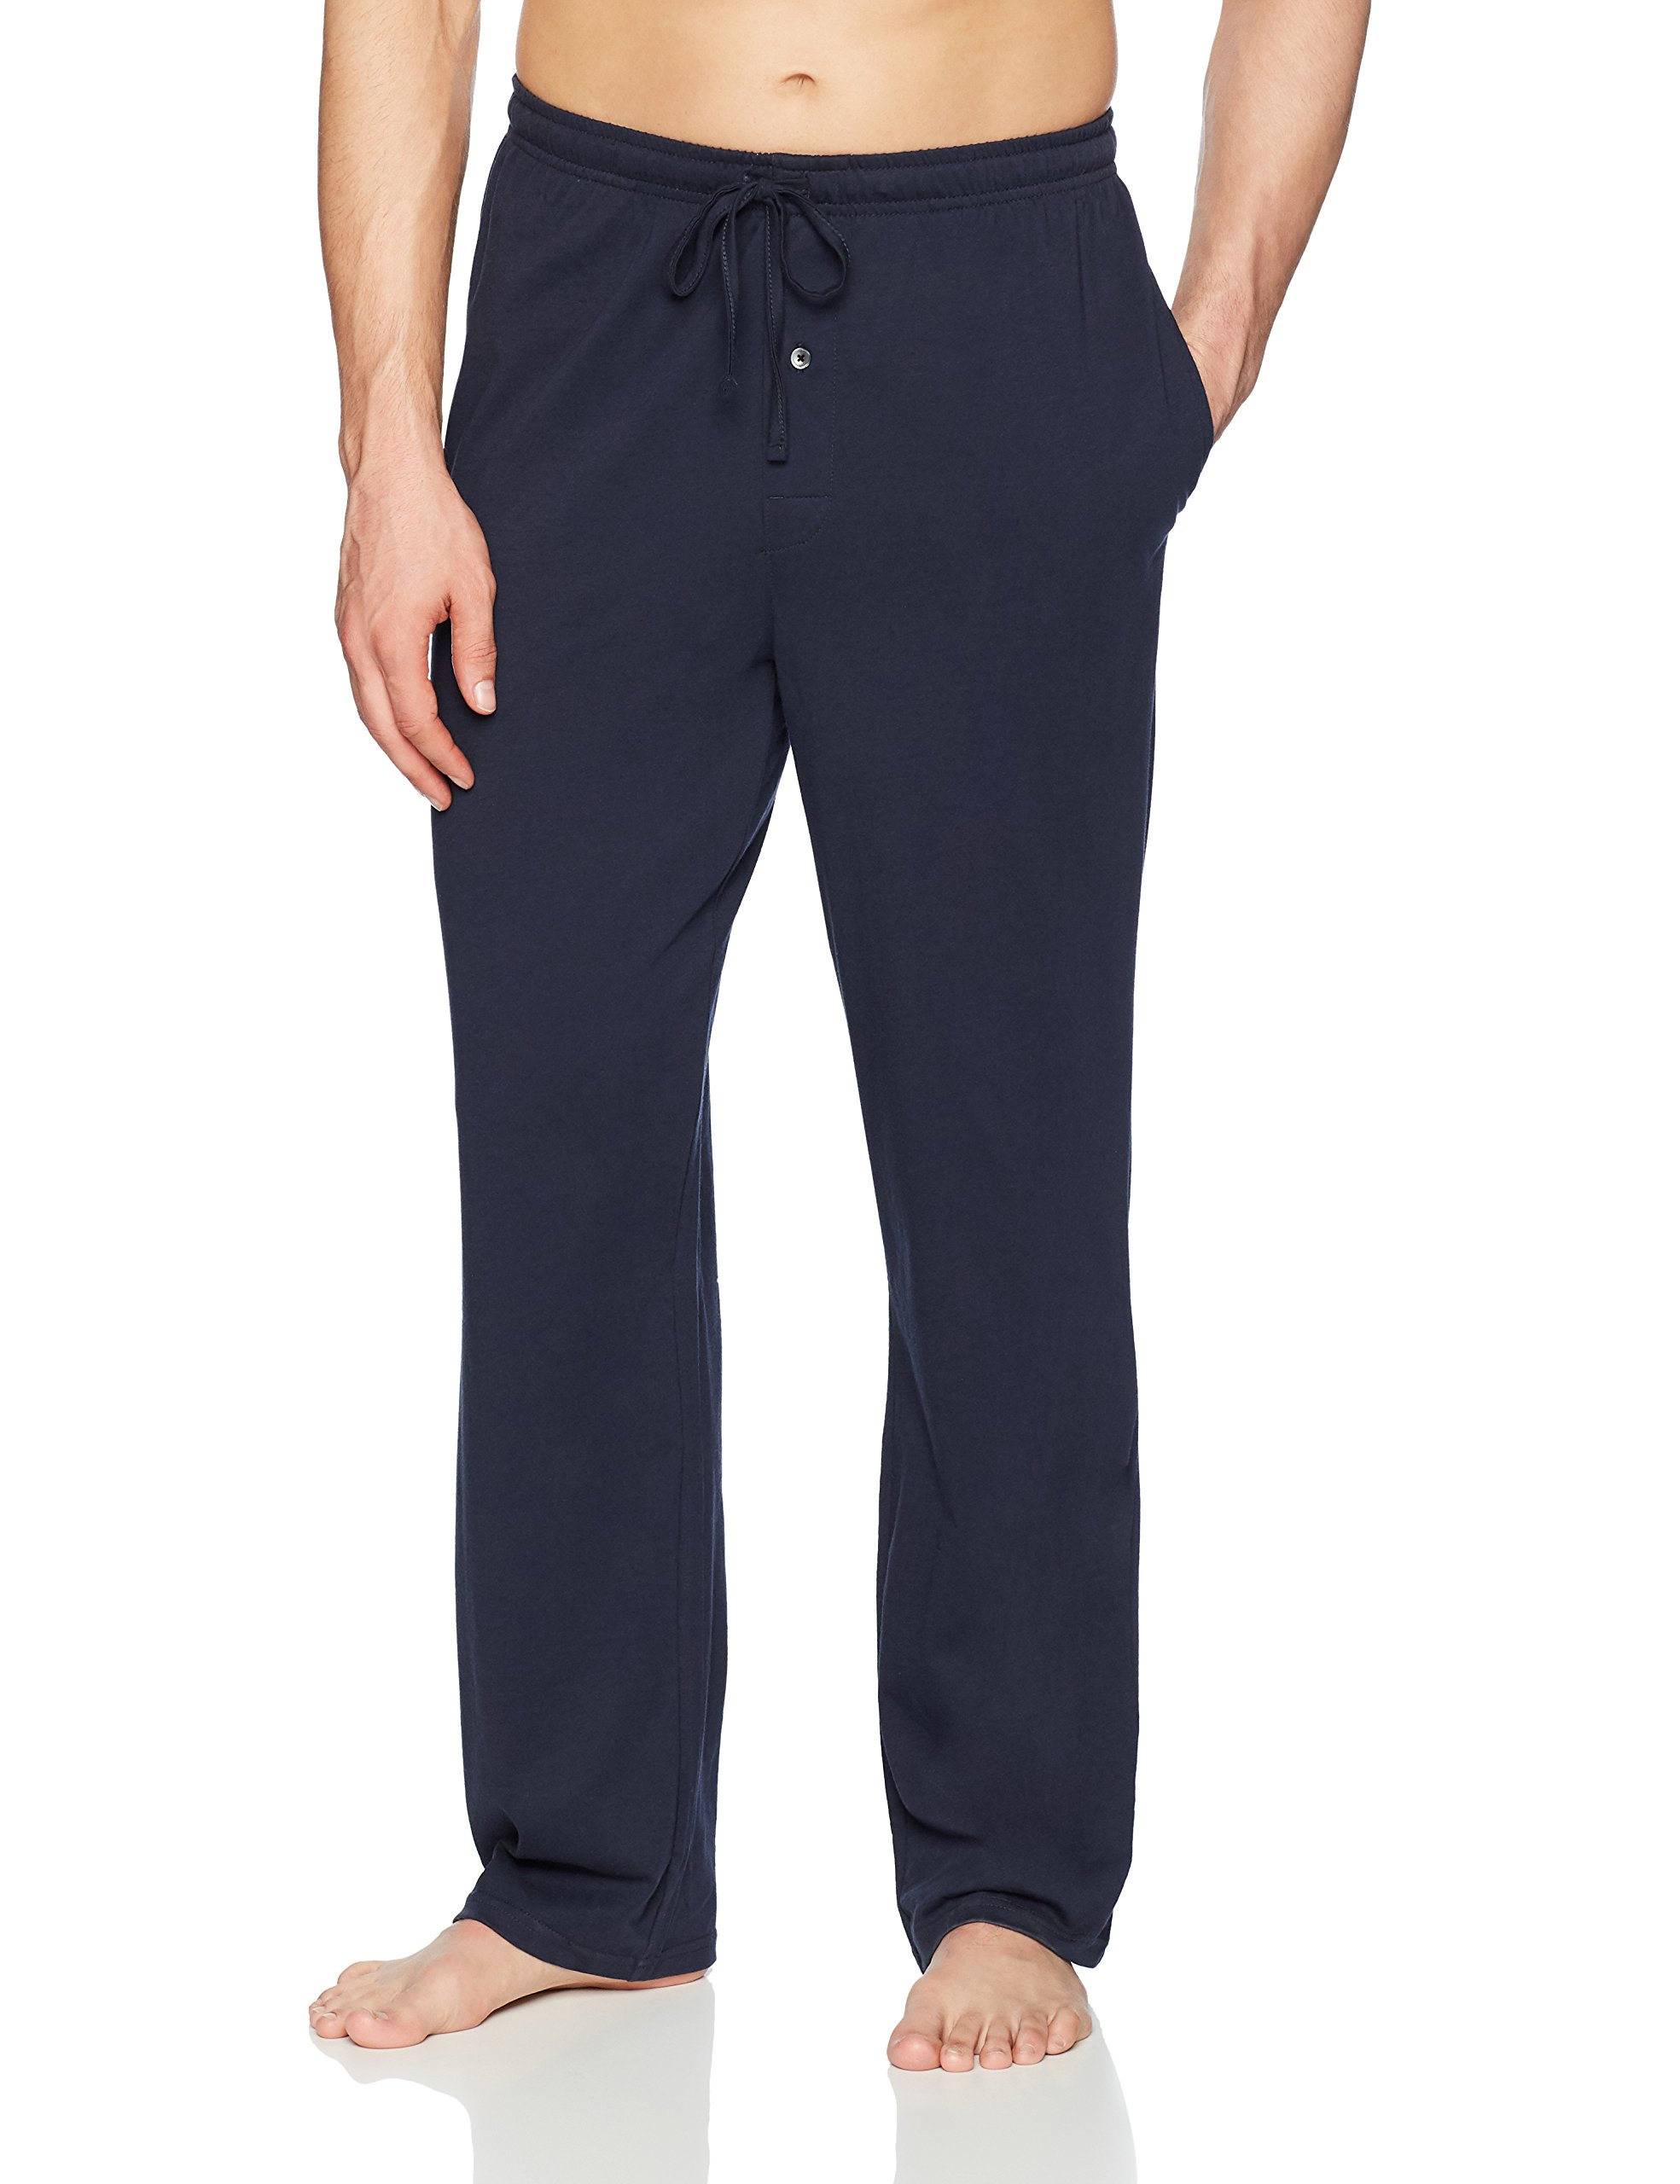 Amazon Essentials Men's Knit Pajama Pant, Navy, Medium